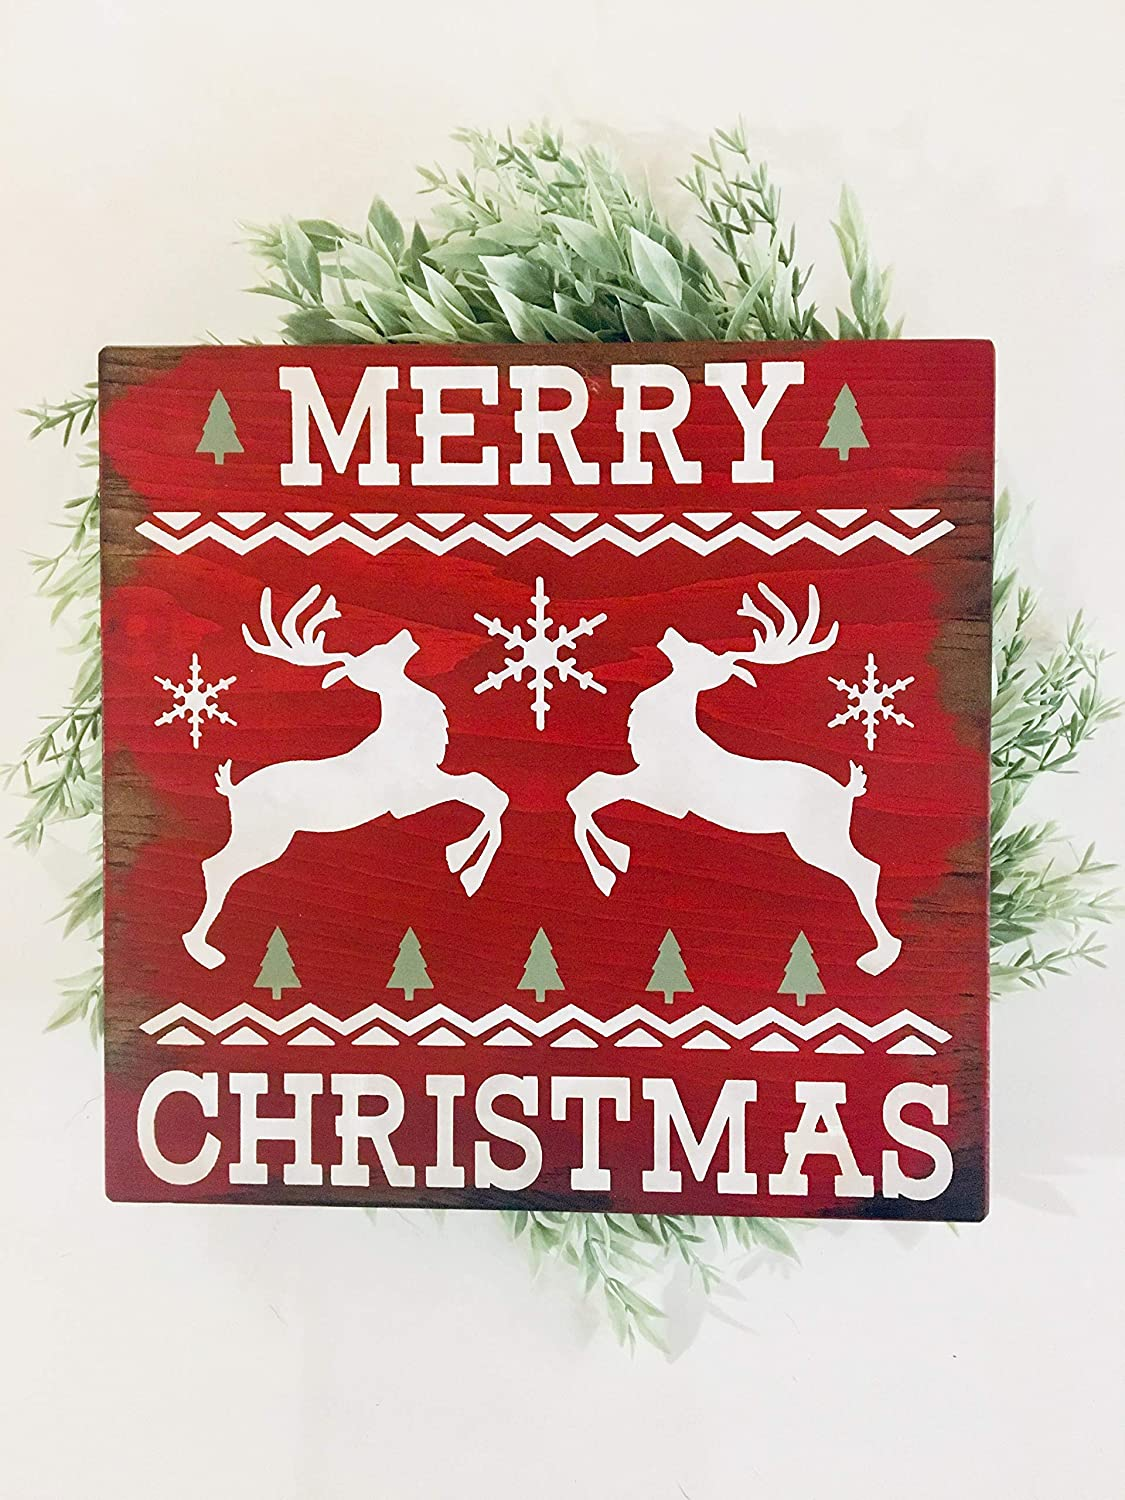 Christmas Rustic Farmhouse Plaque Wall Hanging Signs with Deer Wreath Supplies